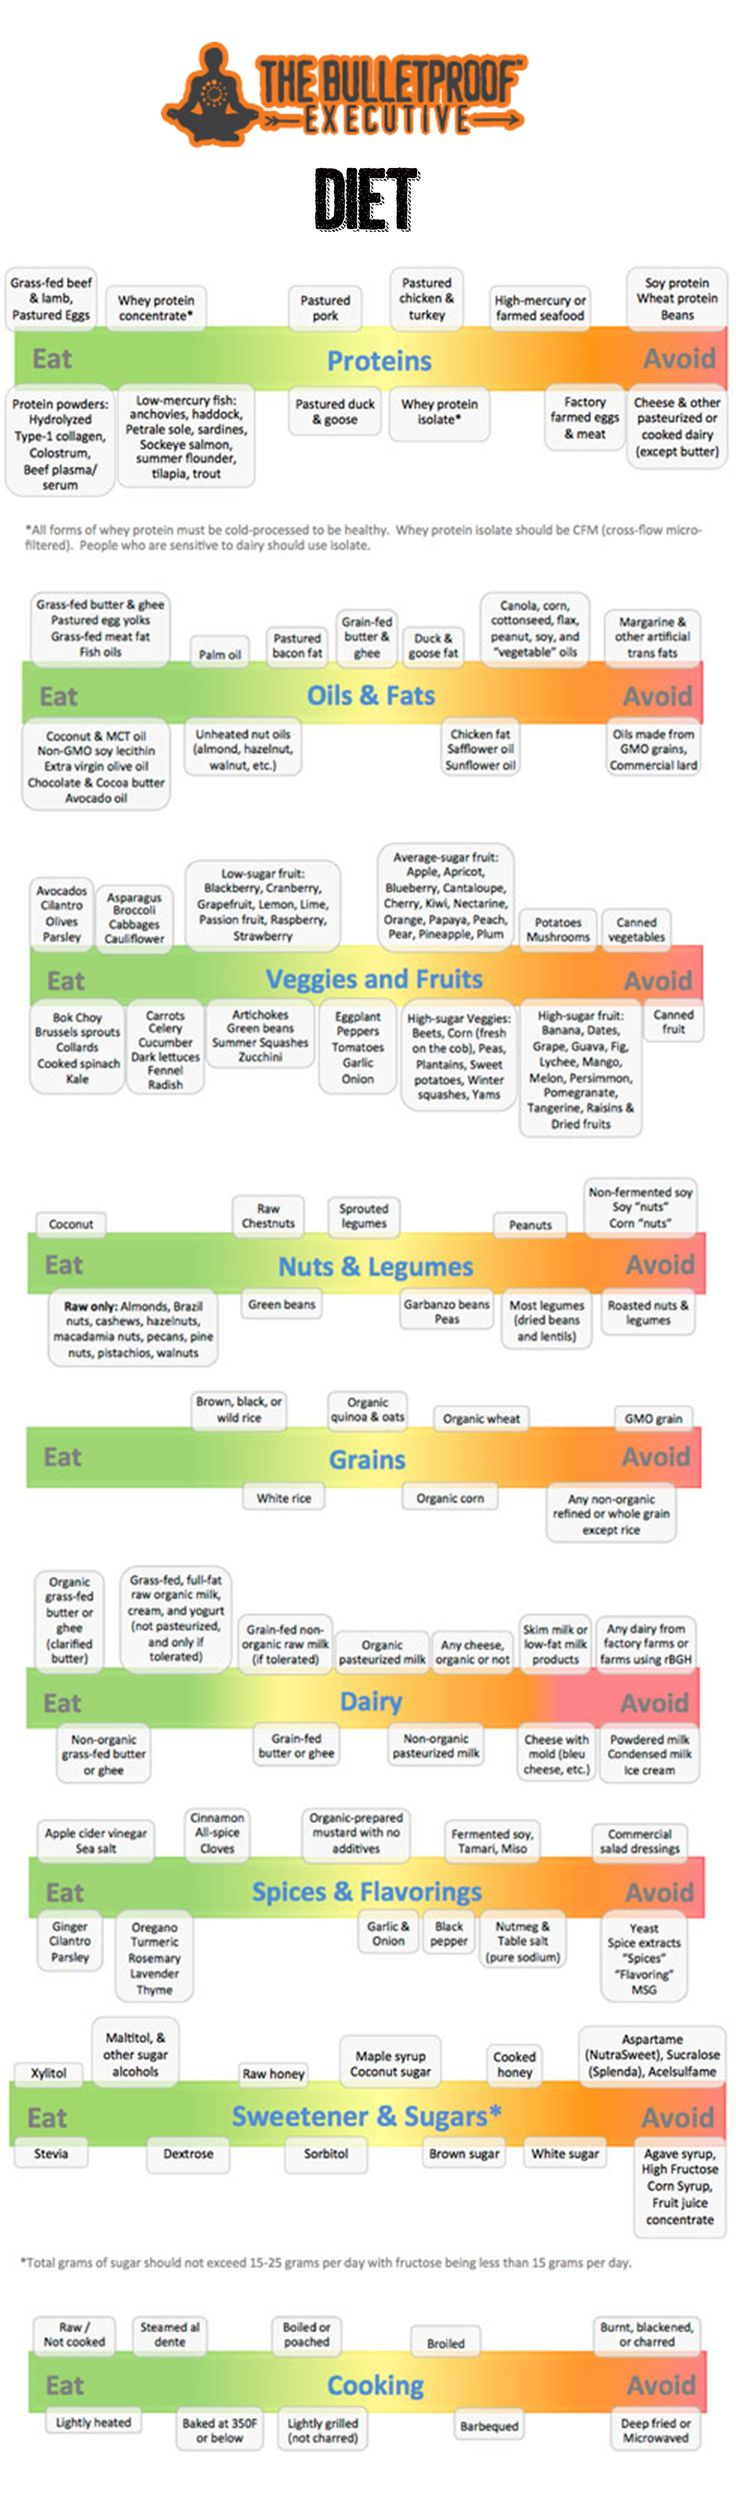 Dave Asprey's diet choice chart is as near as it gets to perfect as far as my experience and study has shown. Although I'd be a little less harsh on cheese if it were my chart : )  In my personal 80:20 Rule approach, roughly 80% of what I consume is from the left side of this chart, with the remaining 20% selectively chosen from the right side!